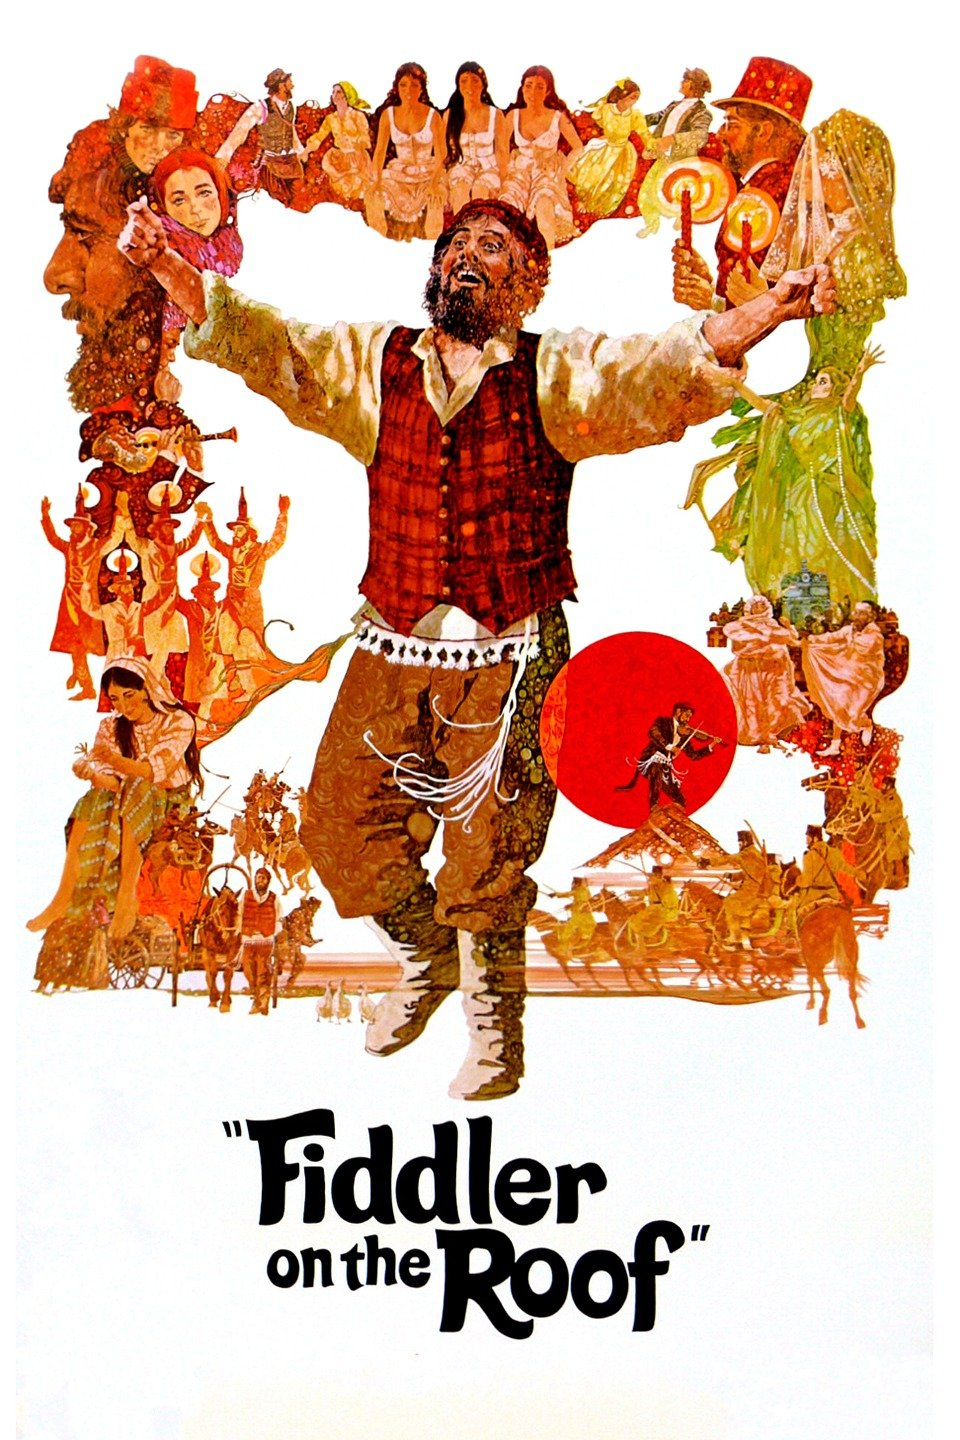 Fiddler on the Roof (1971) presented by TCM